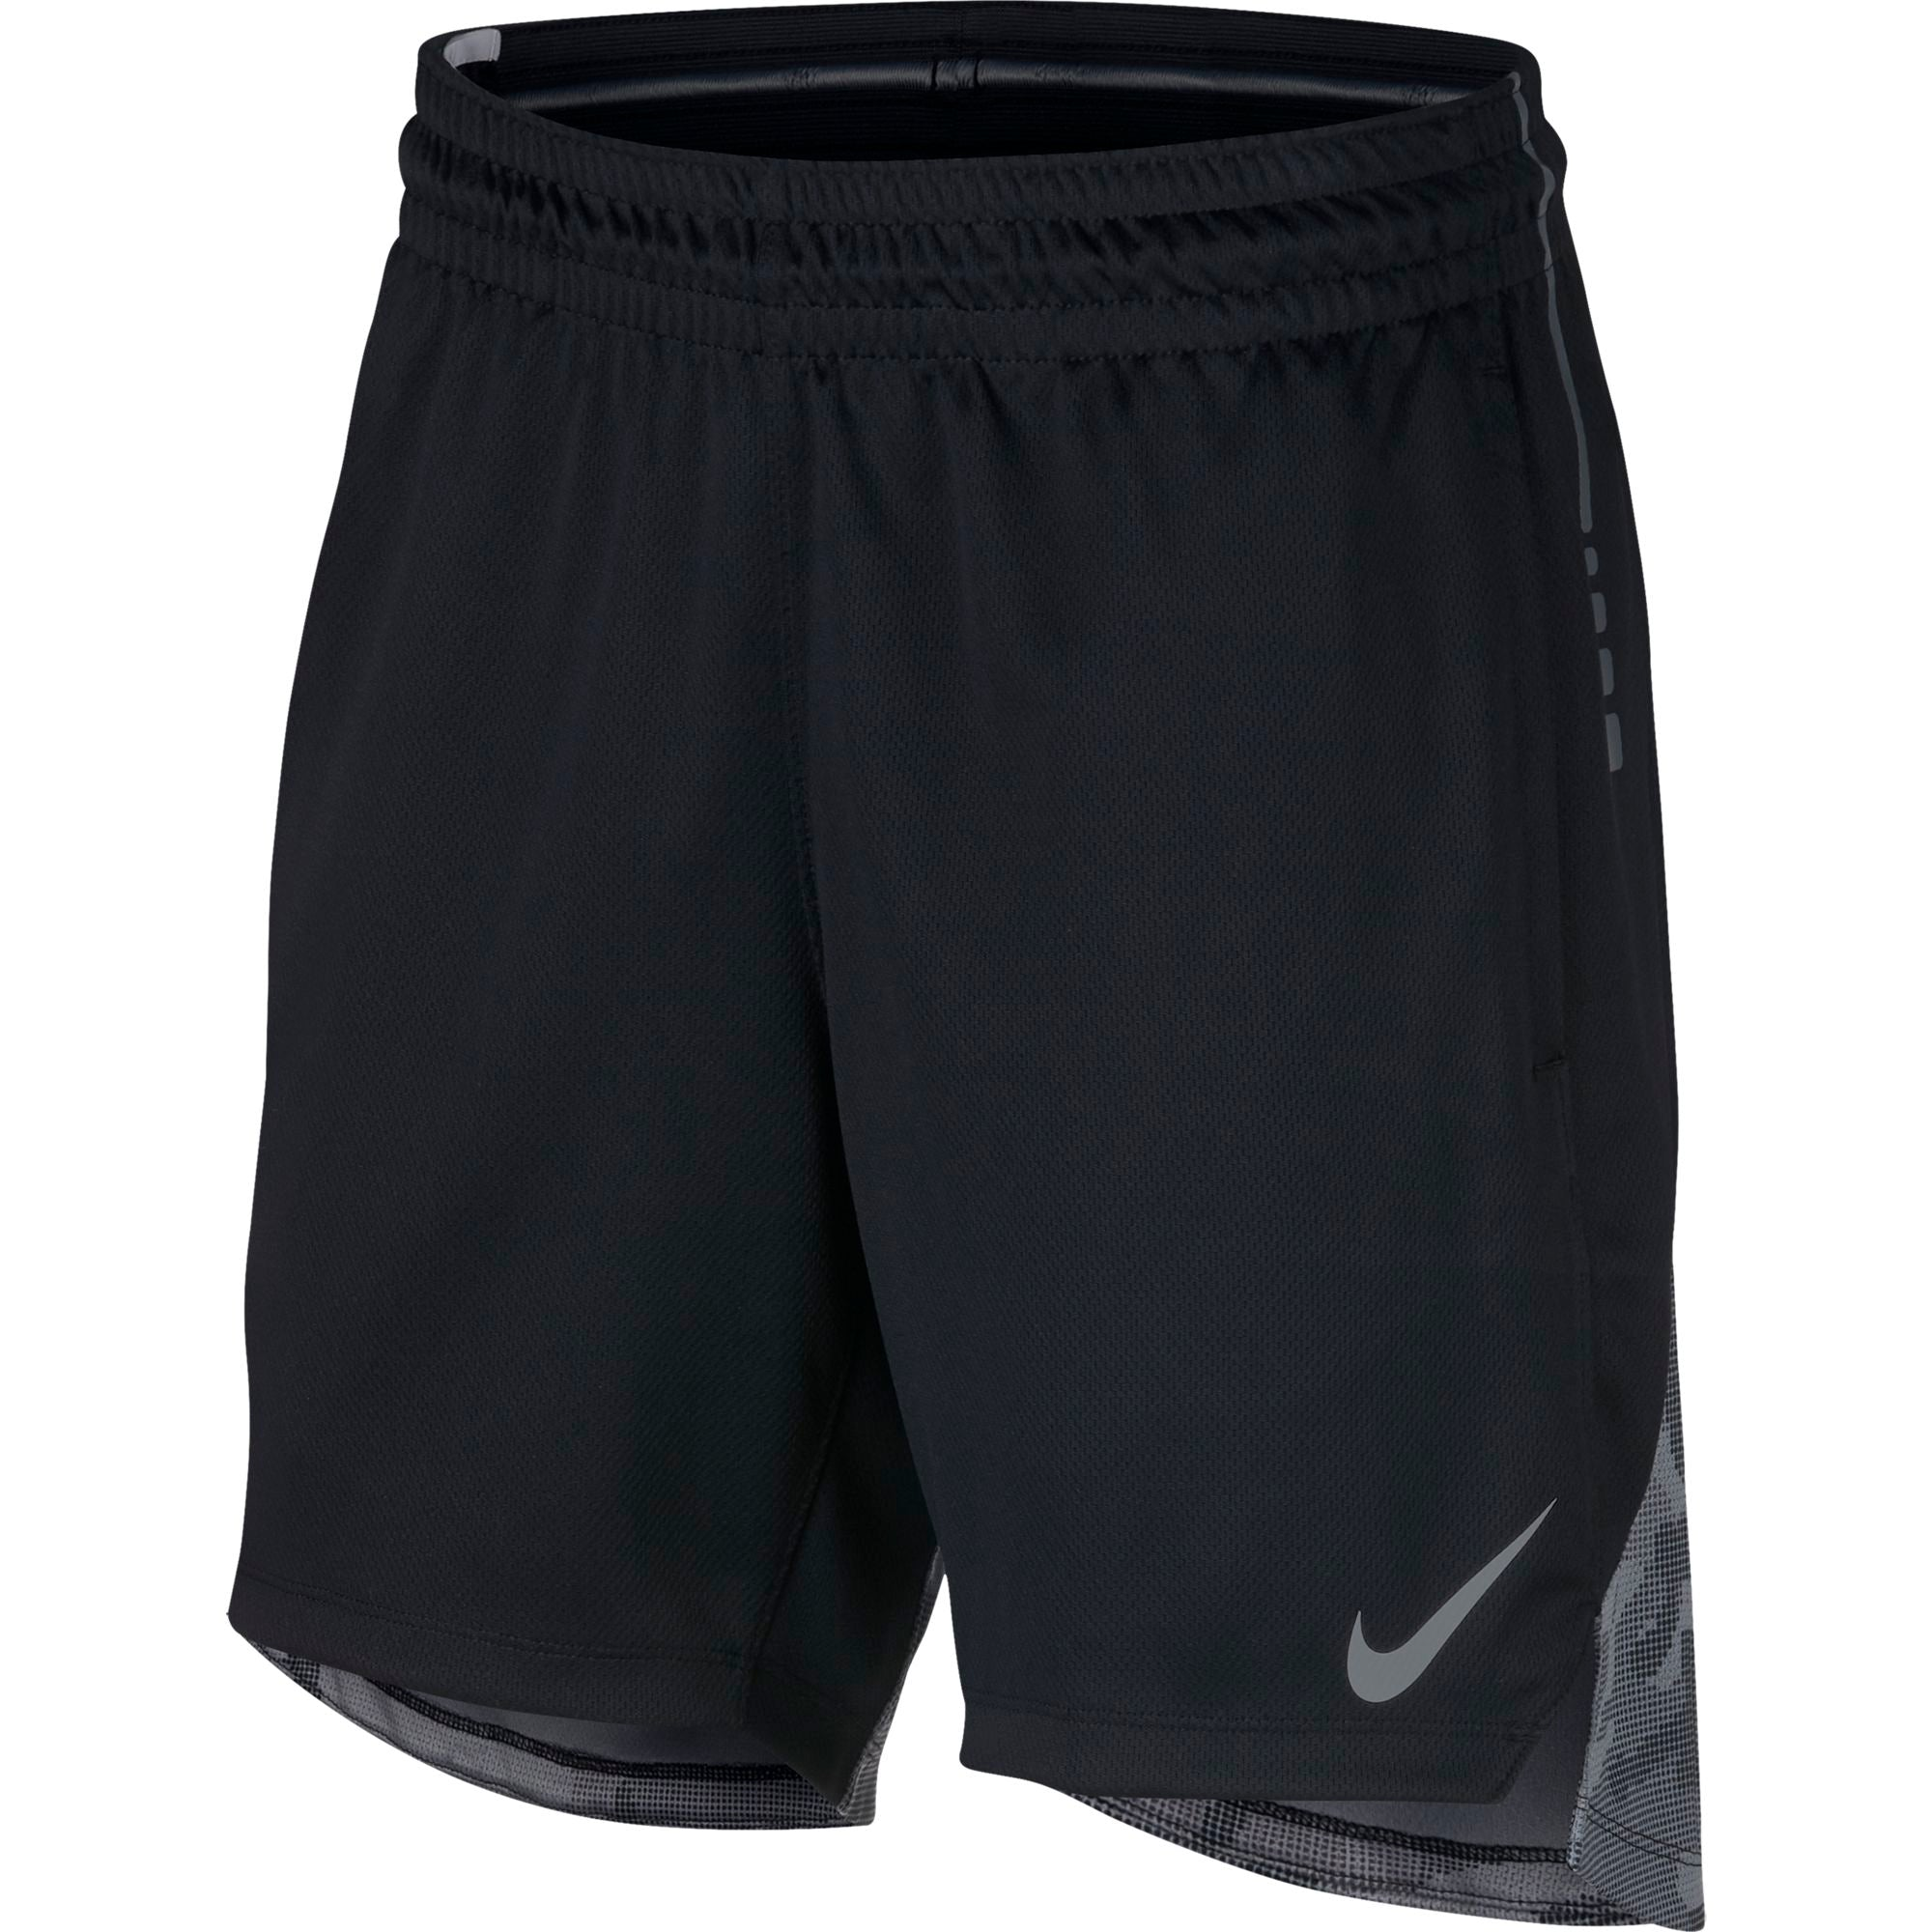 Nike Womens Basketball Elite Shorts - NK-926271-010